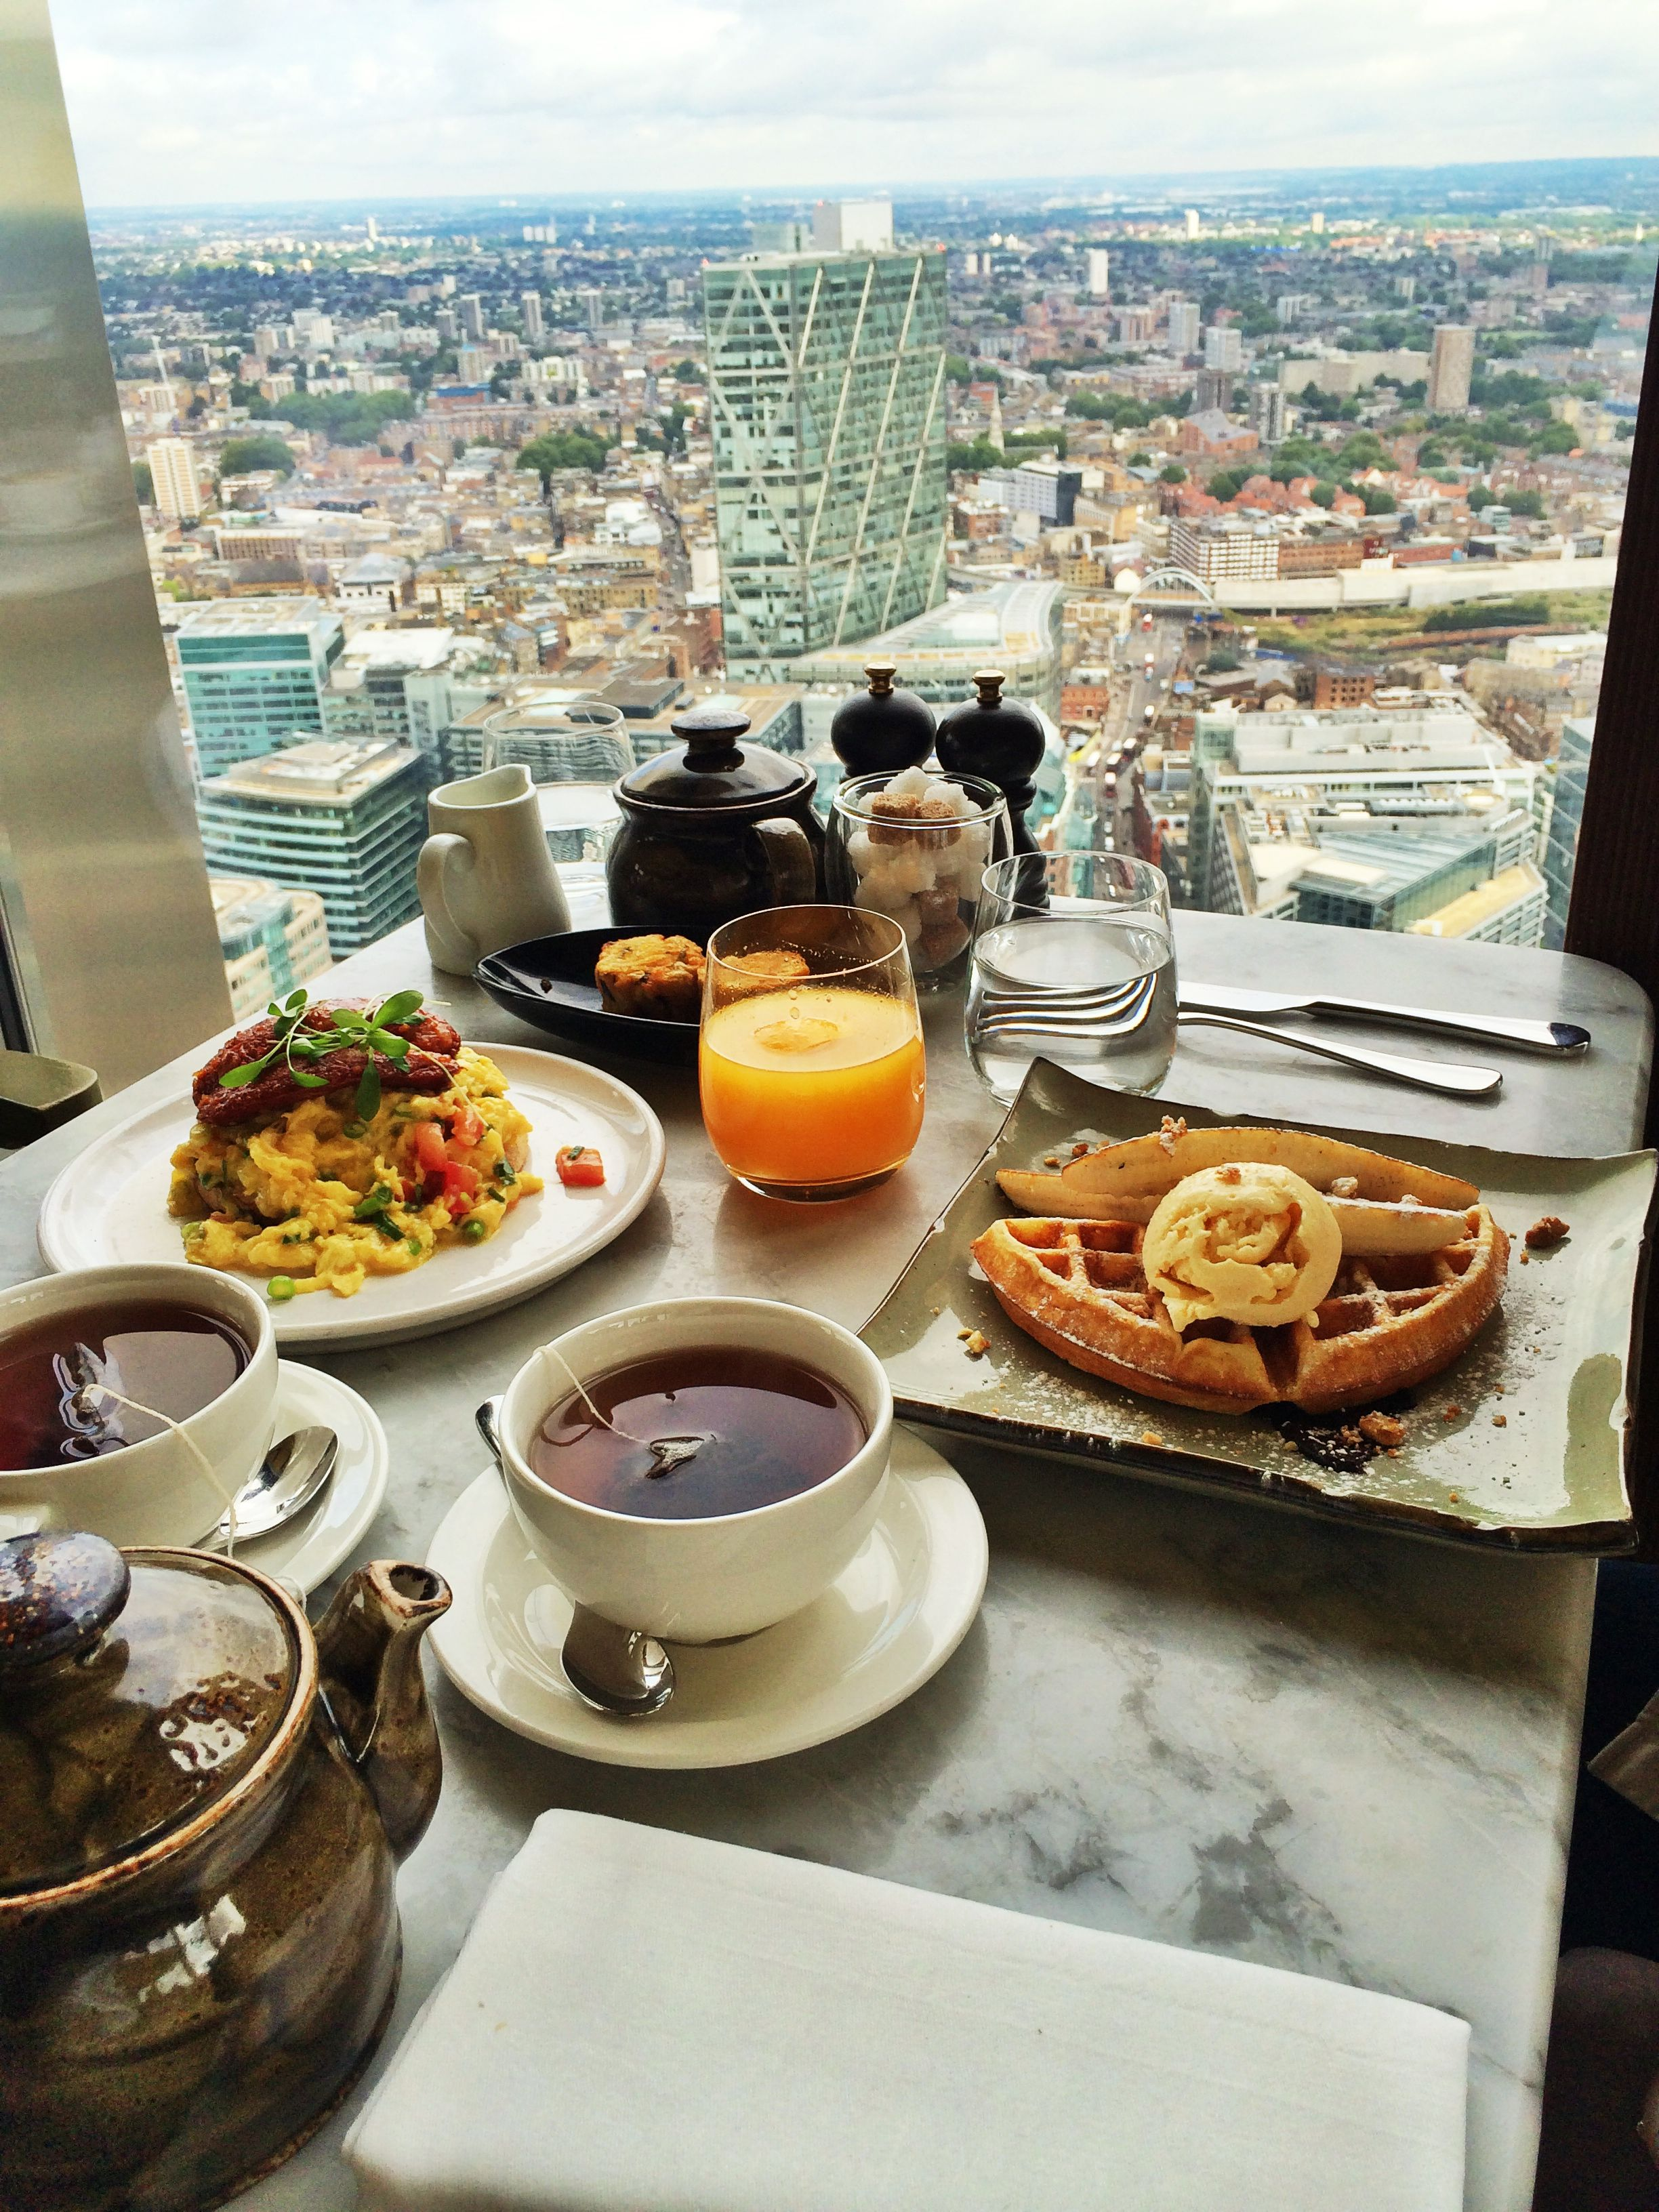 Shoreditch London Uk: Duck And Waffle, Shoreditch, London. Breakfast On The 39th